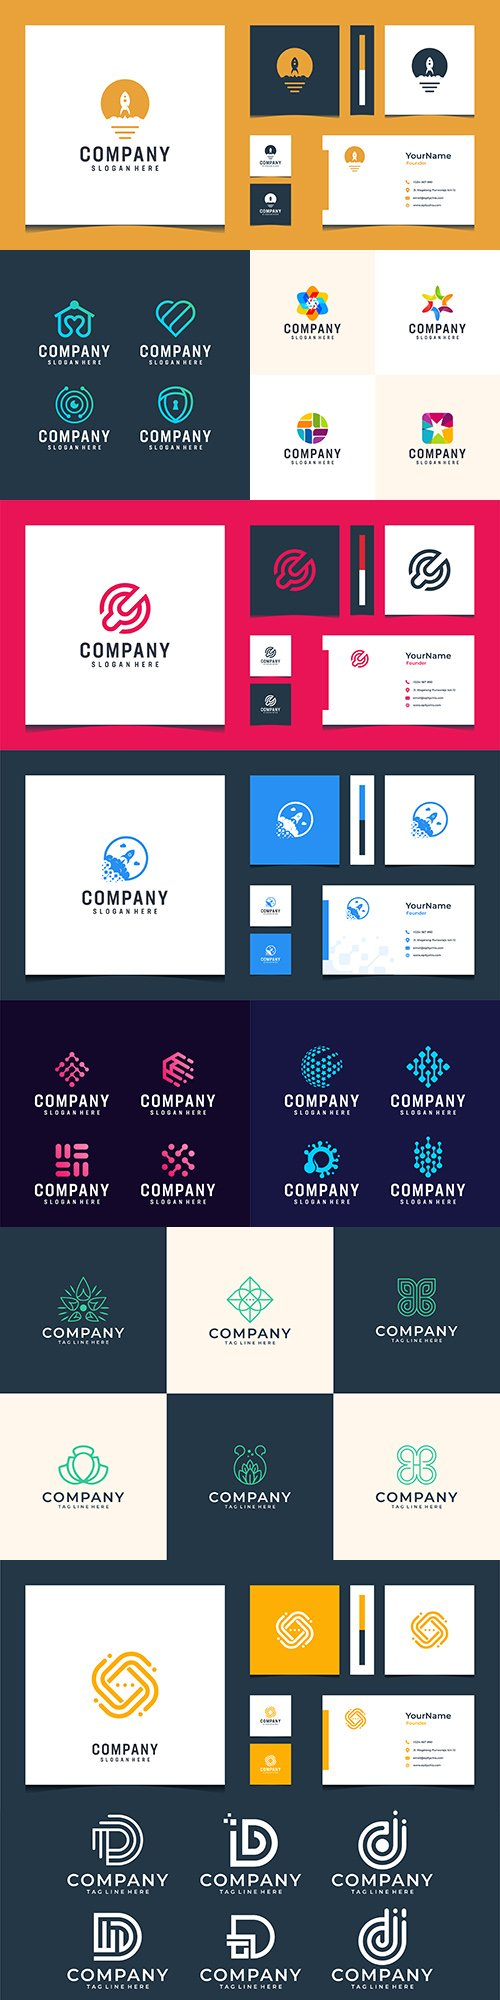 Modern logo and business card design abstract